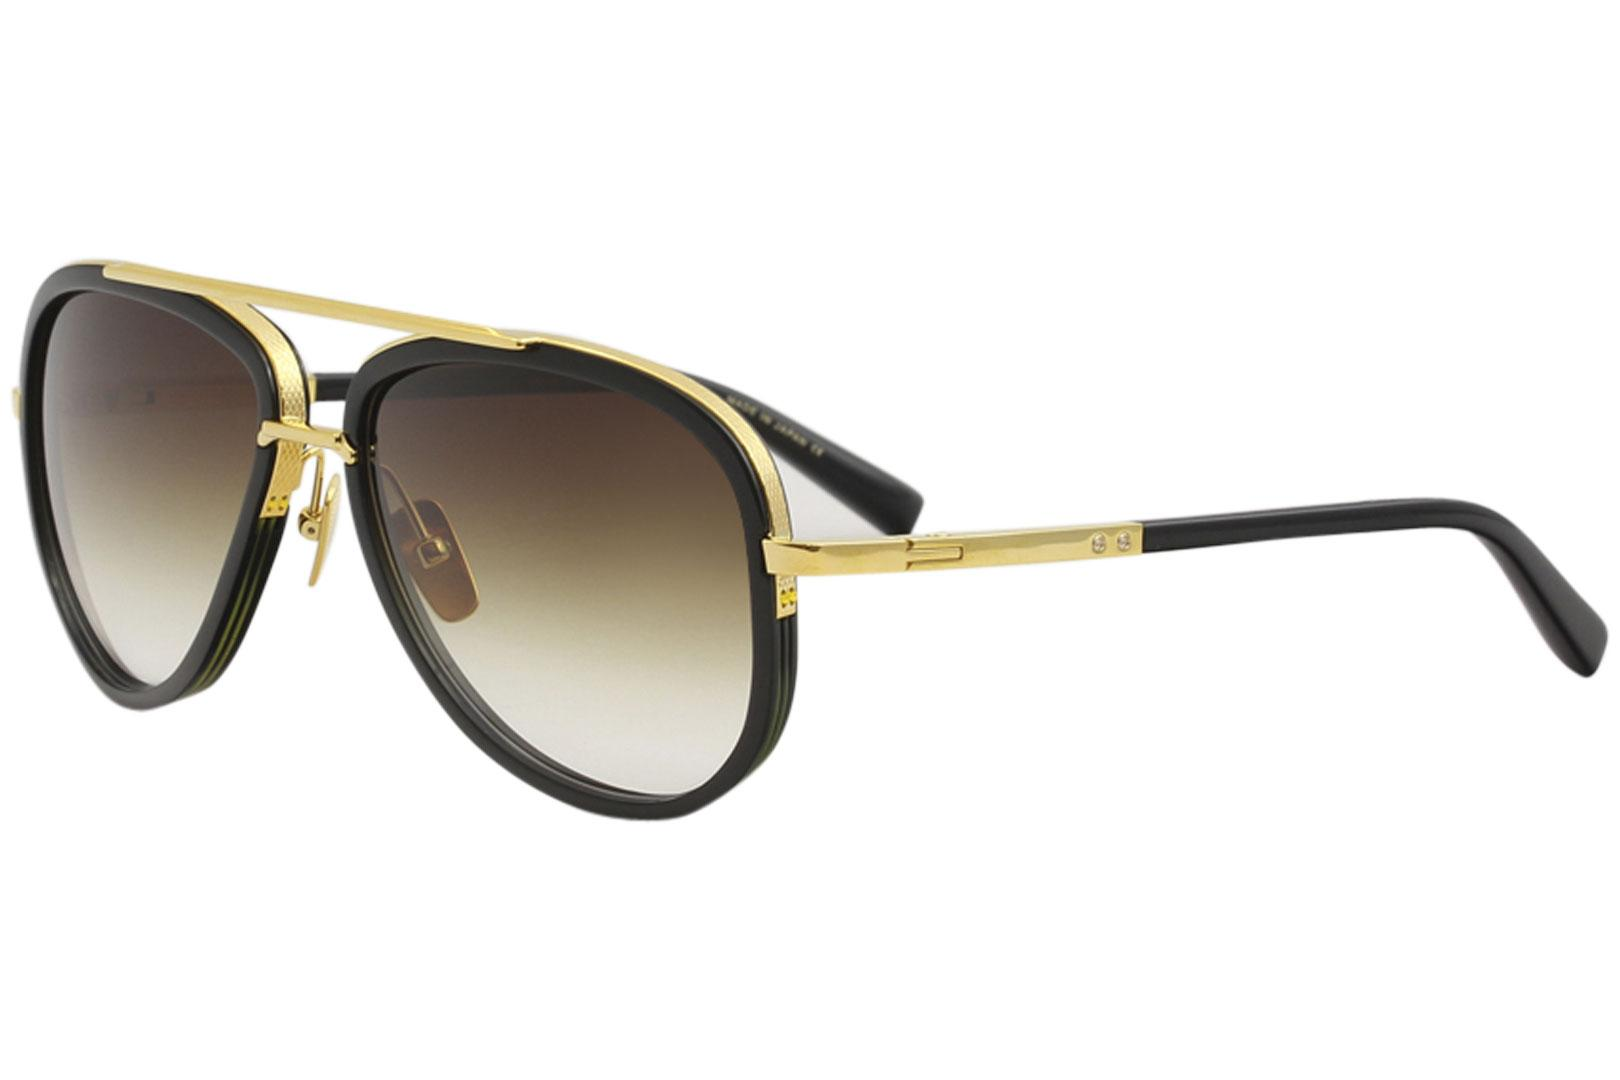 fc97085a924 Dita Men s Mach-Two DRX-2031 18K Gold Fashion Pilot Titanium Sunglasses by  Dita. Touch to zoom